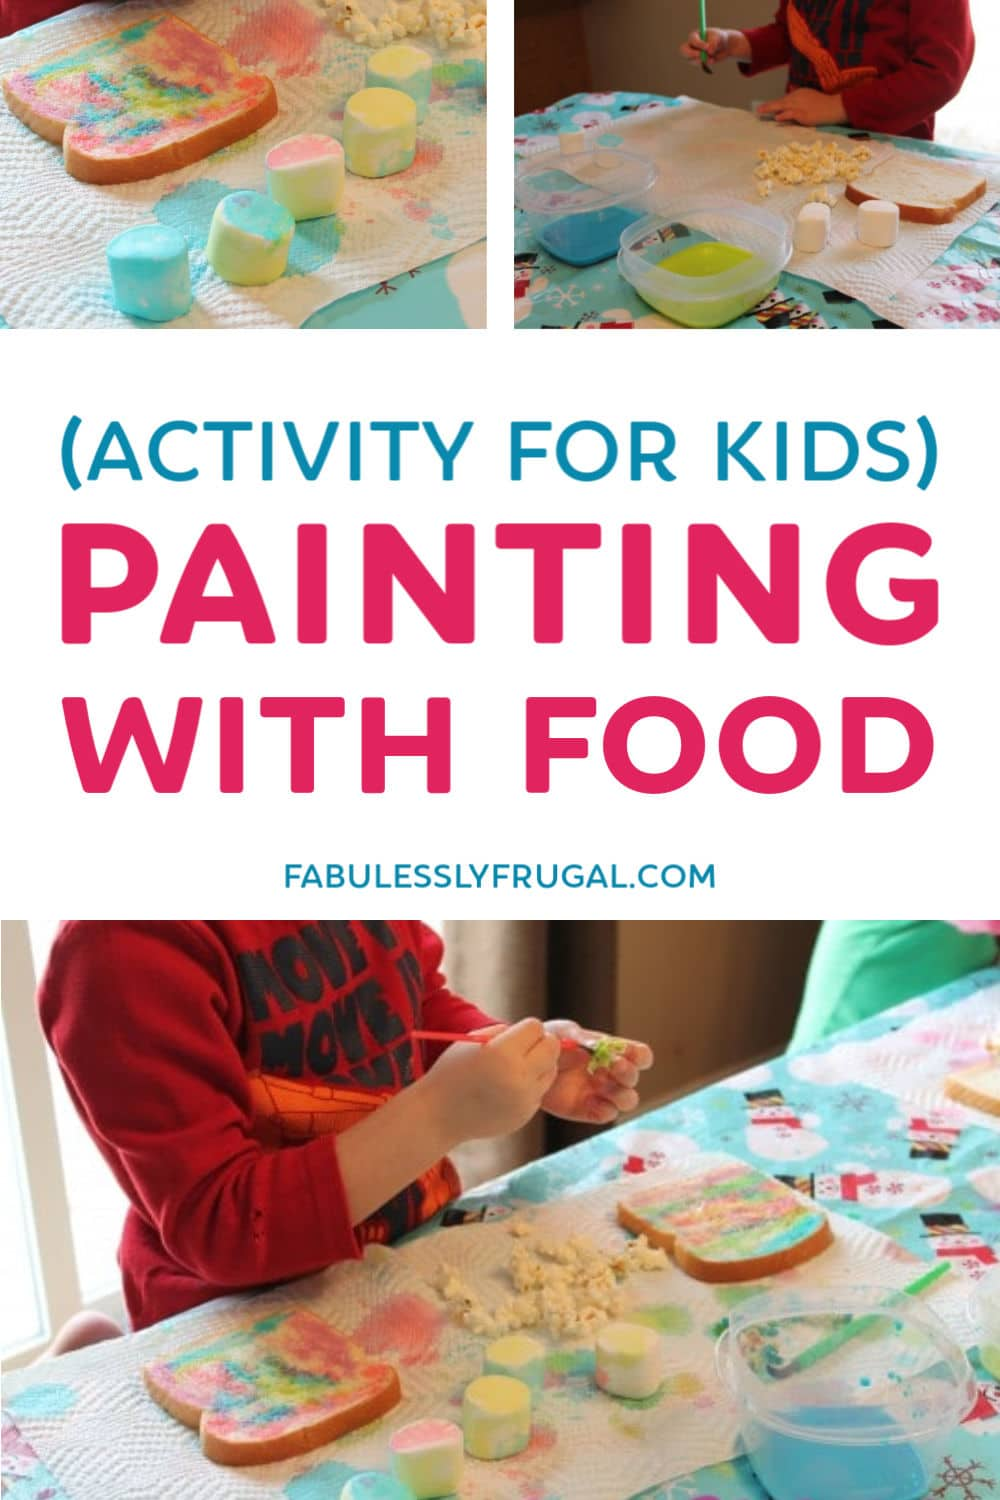 Painting with food activity for kids